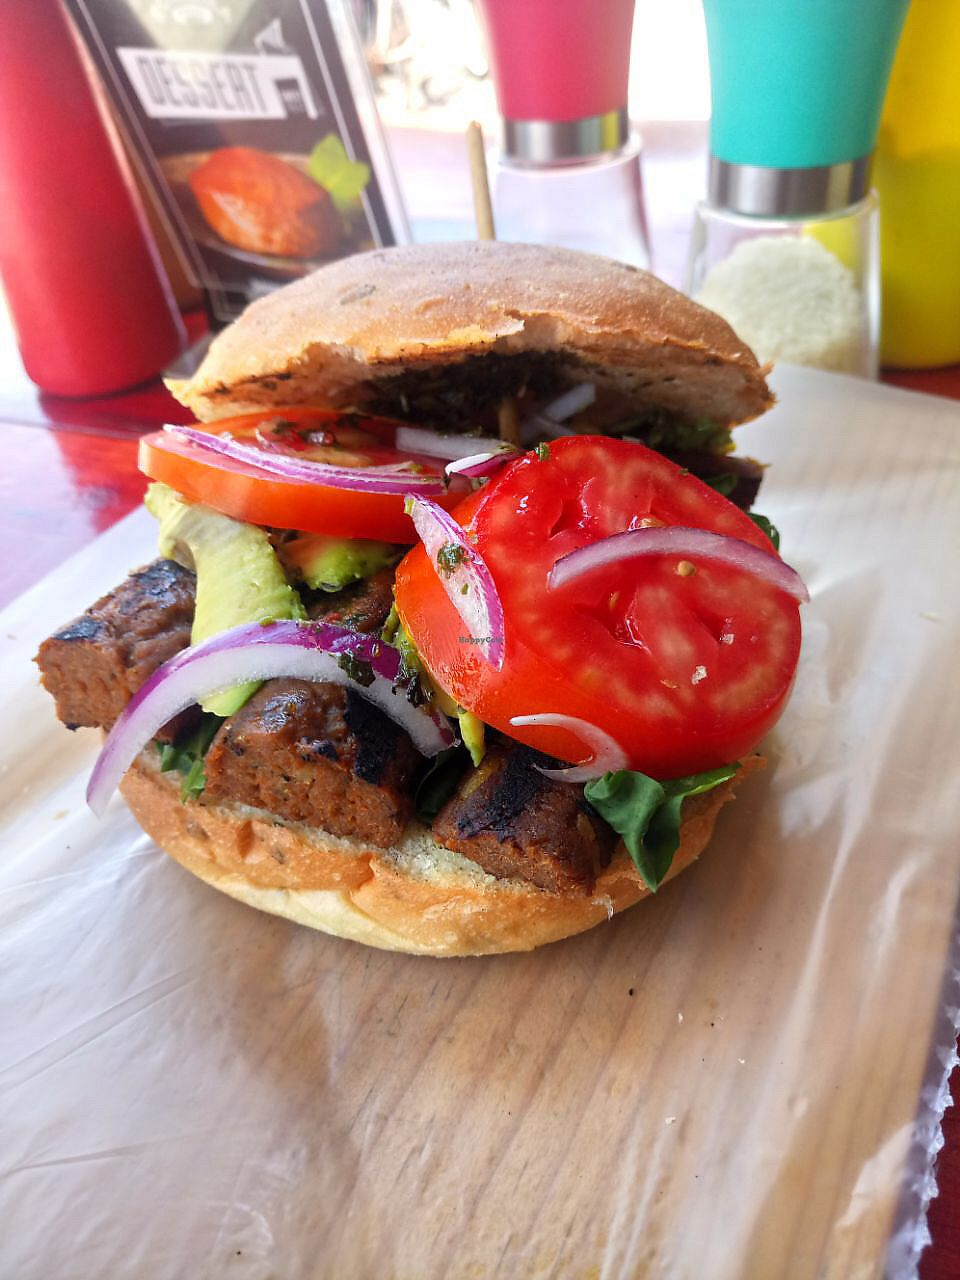 "Photo of Roraima Burgers  by <a href=""/members/profile/Kukiaries"">Kukiaries</a> <br/>Nueva! Soy chorizo <br/> April 6, 2018  - <a href='/contact/abuse/image/97800/381687'>Report</a>"